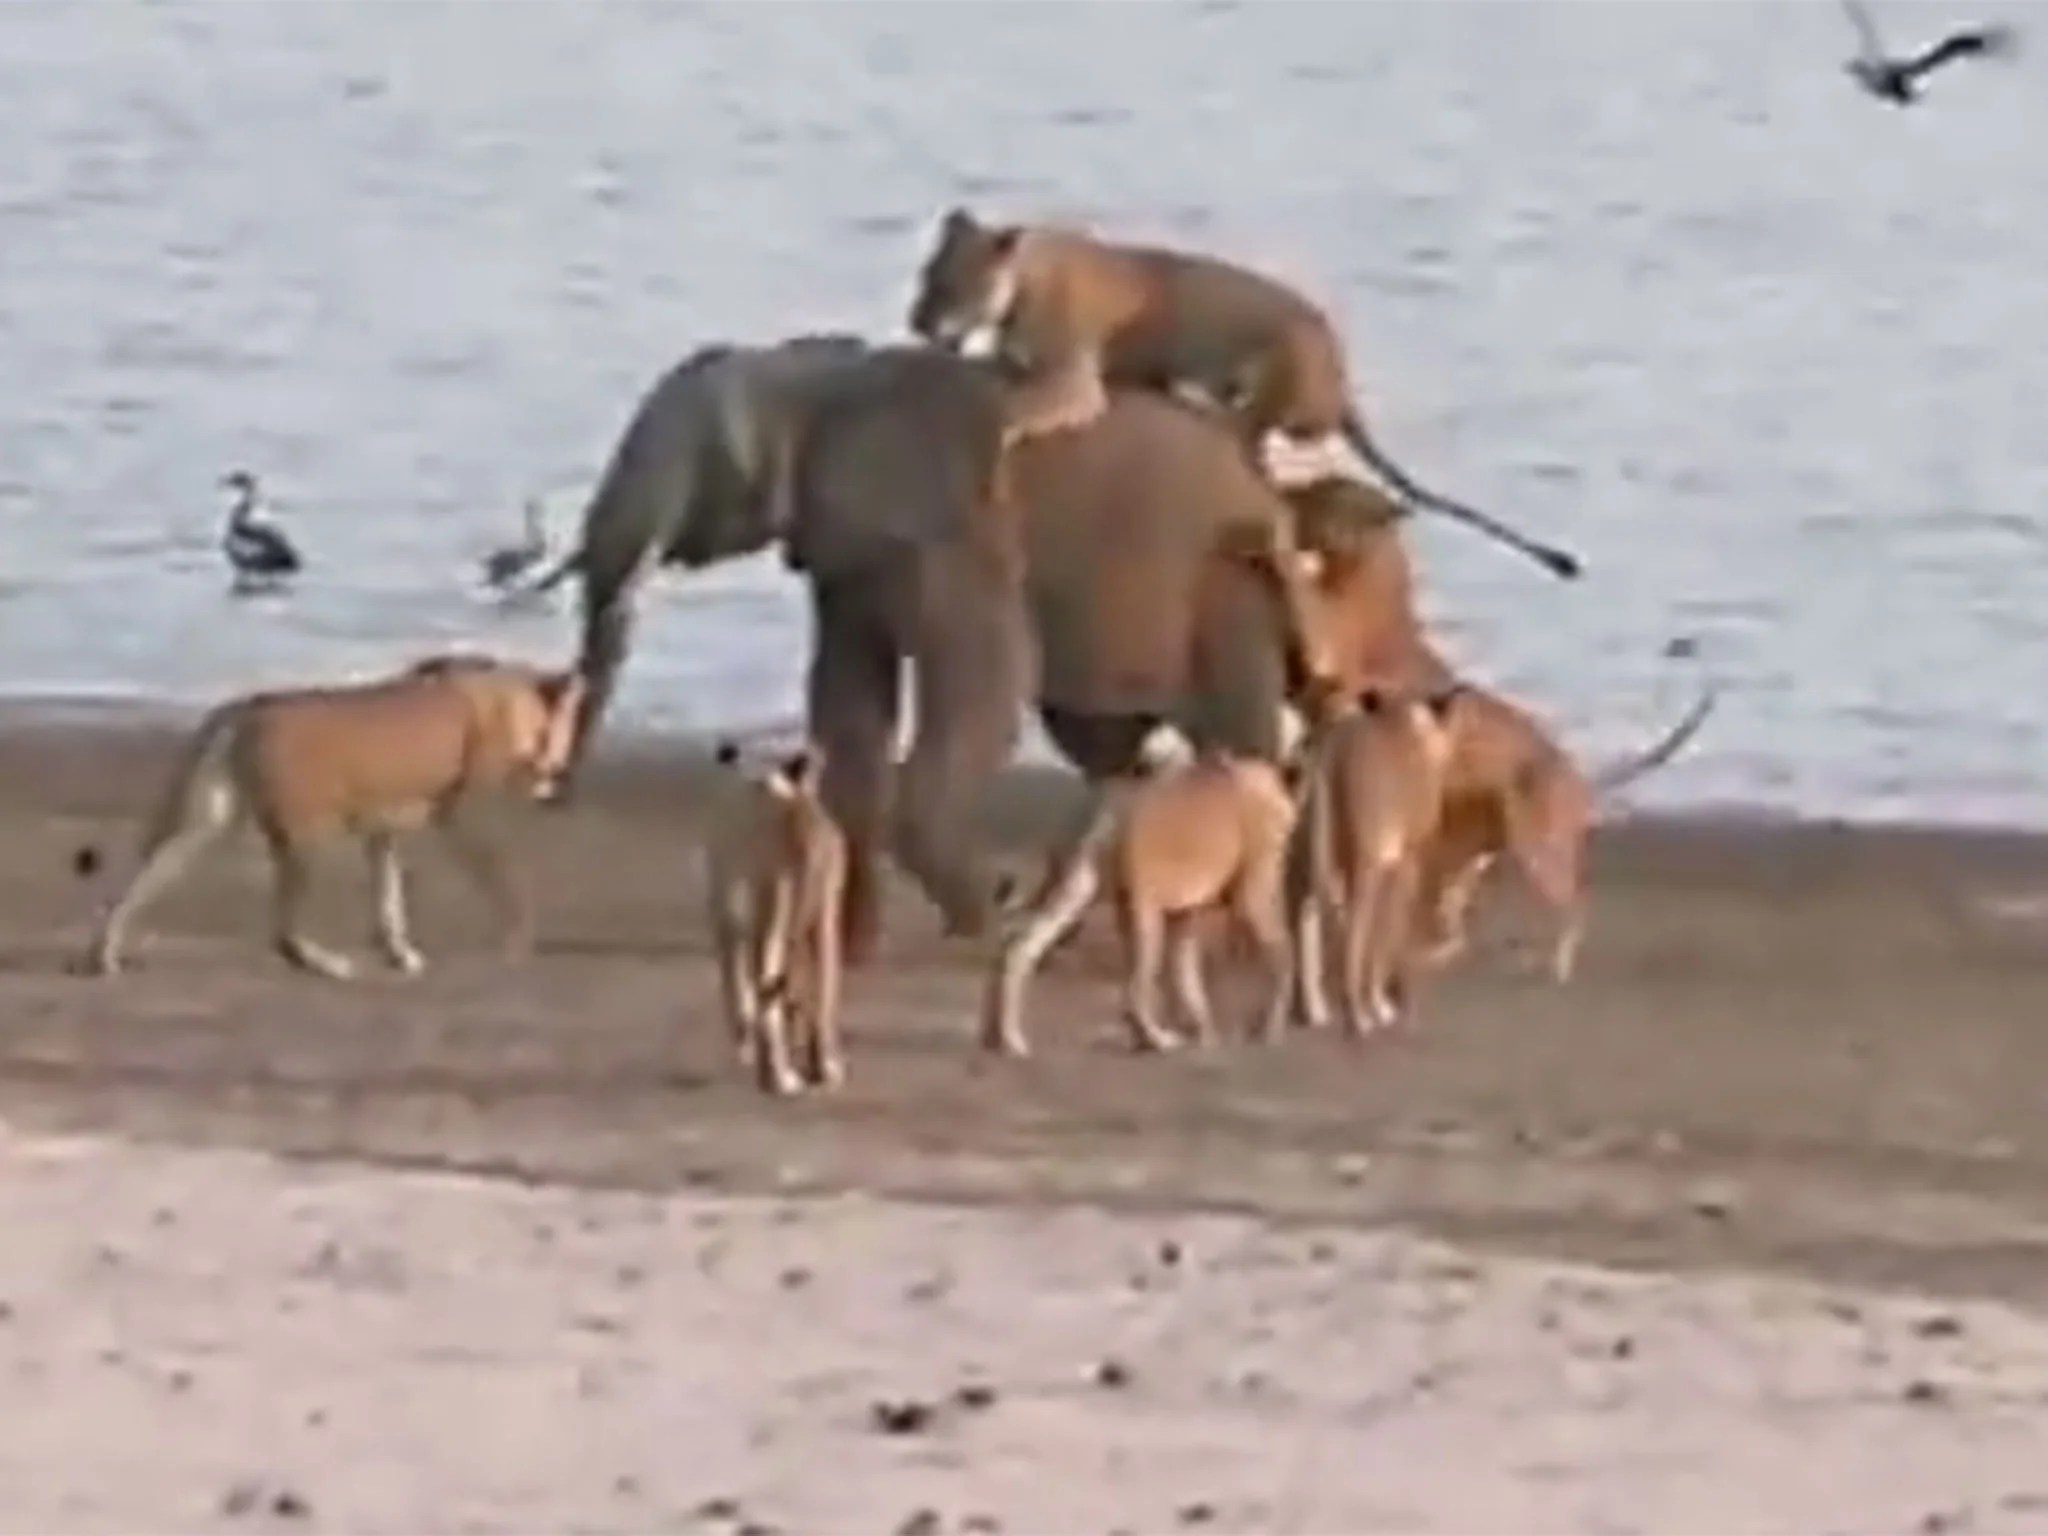 watch a young elephant fight off 14 lions | the independent